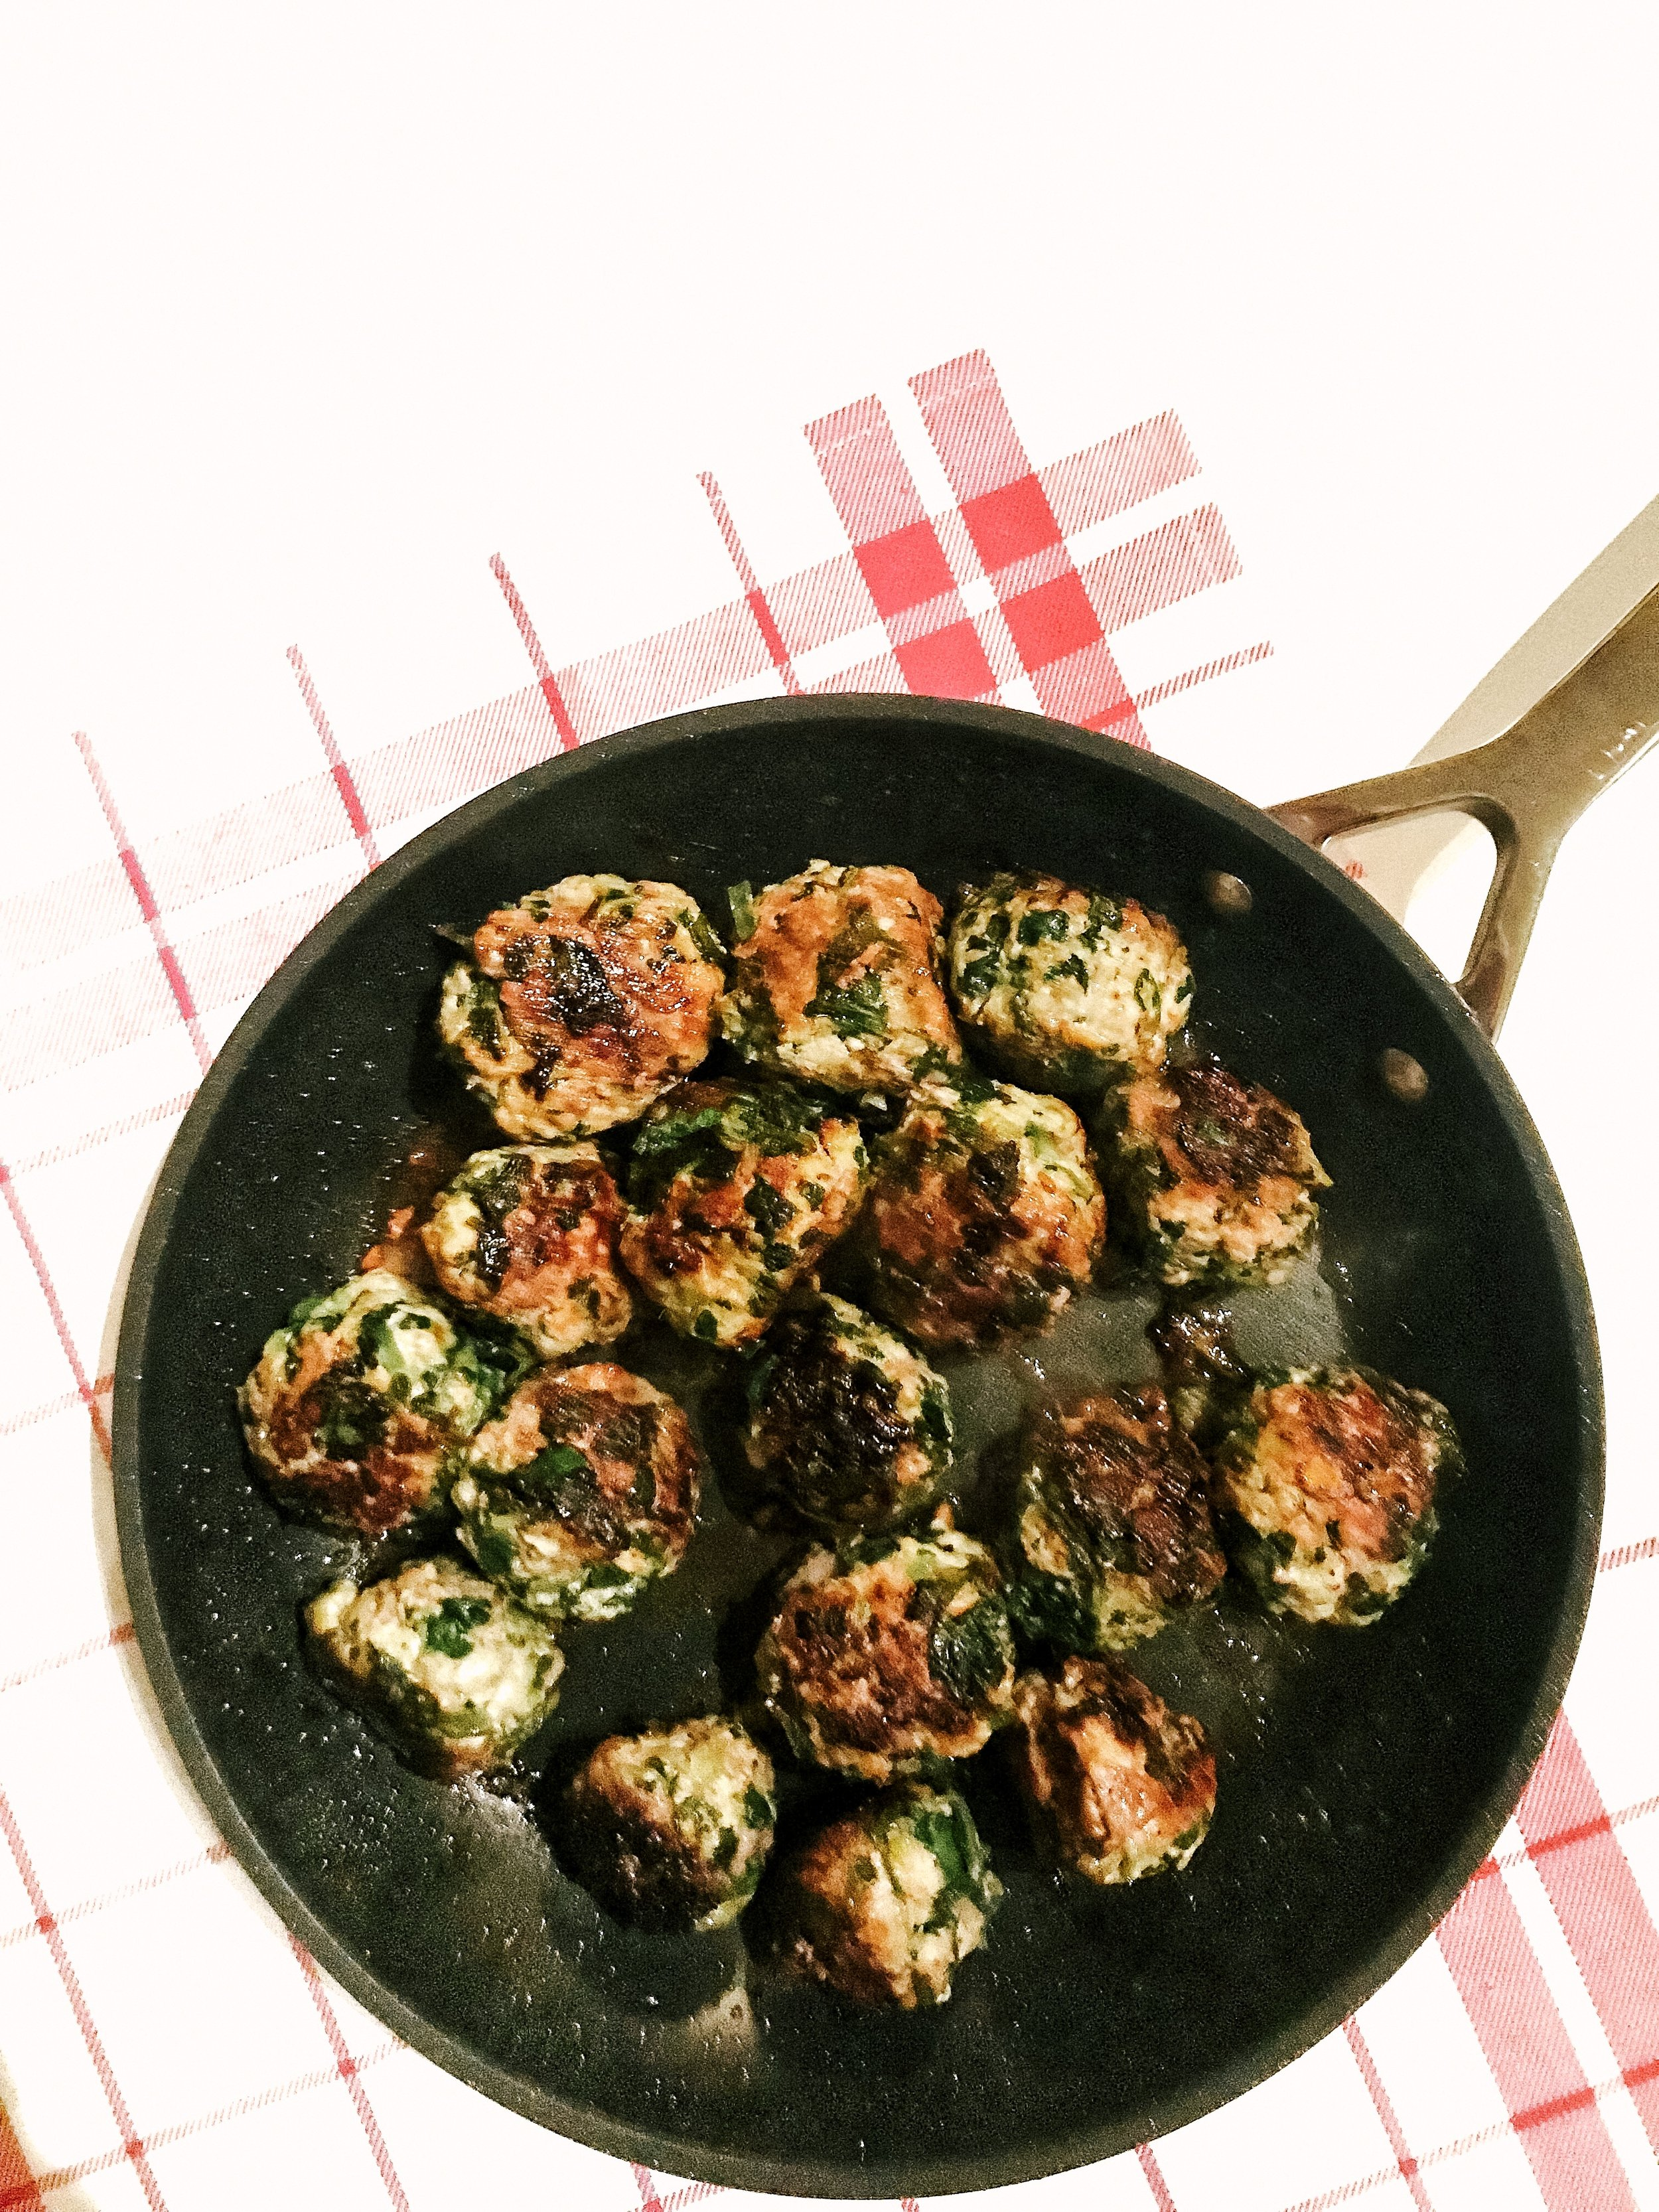 Chimichurri Meatballs (AIP, GAPS, Paleo, Gluten-Free, Dairy-Free, Egg-Free) - 30 minute dinner recipe